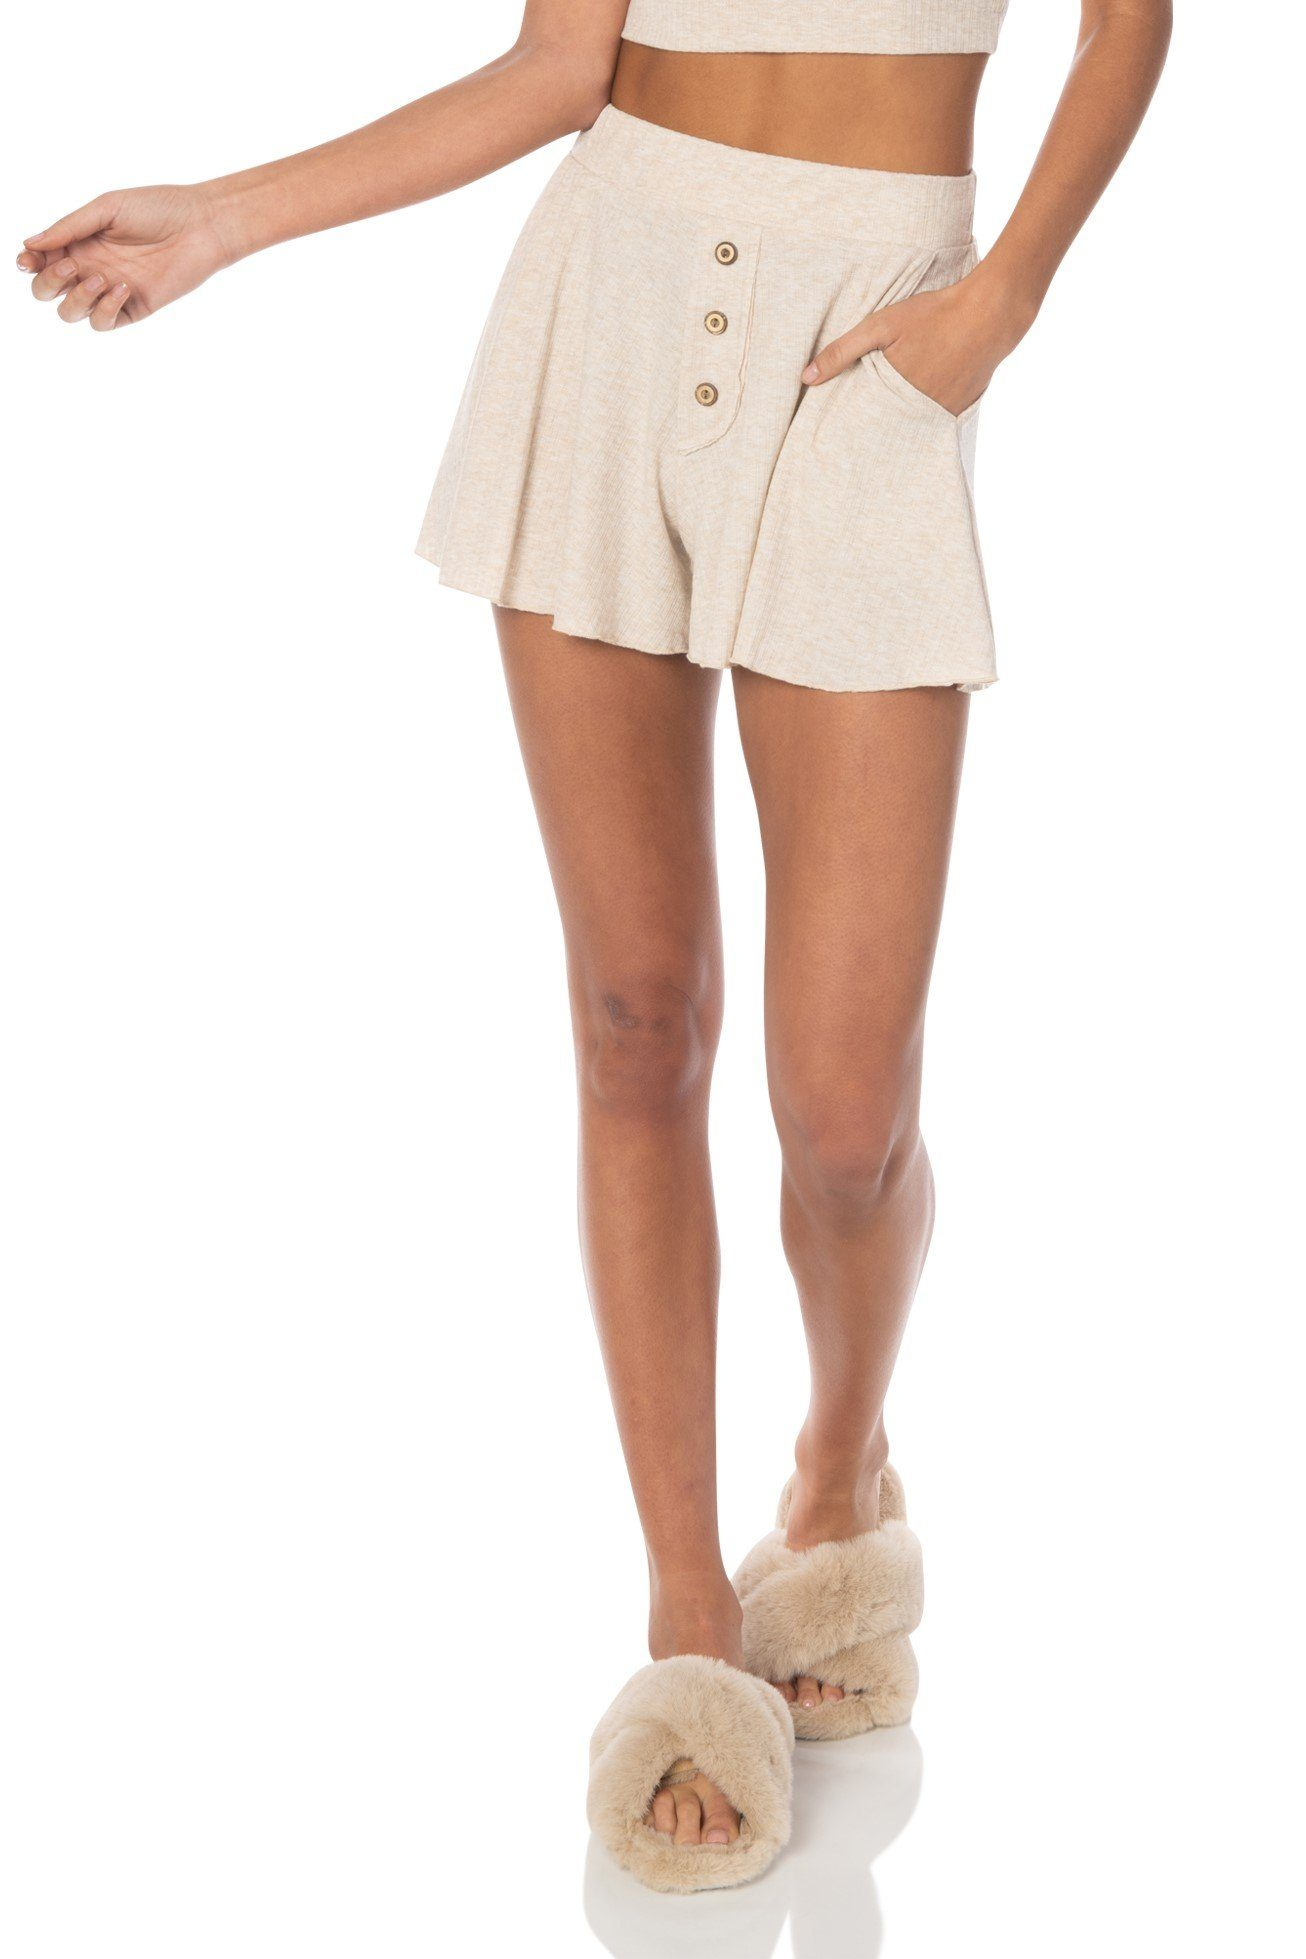 PJs All Day Highwaist Shorts Beige Bottoms HYPEACH